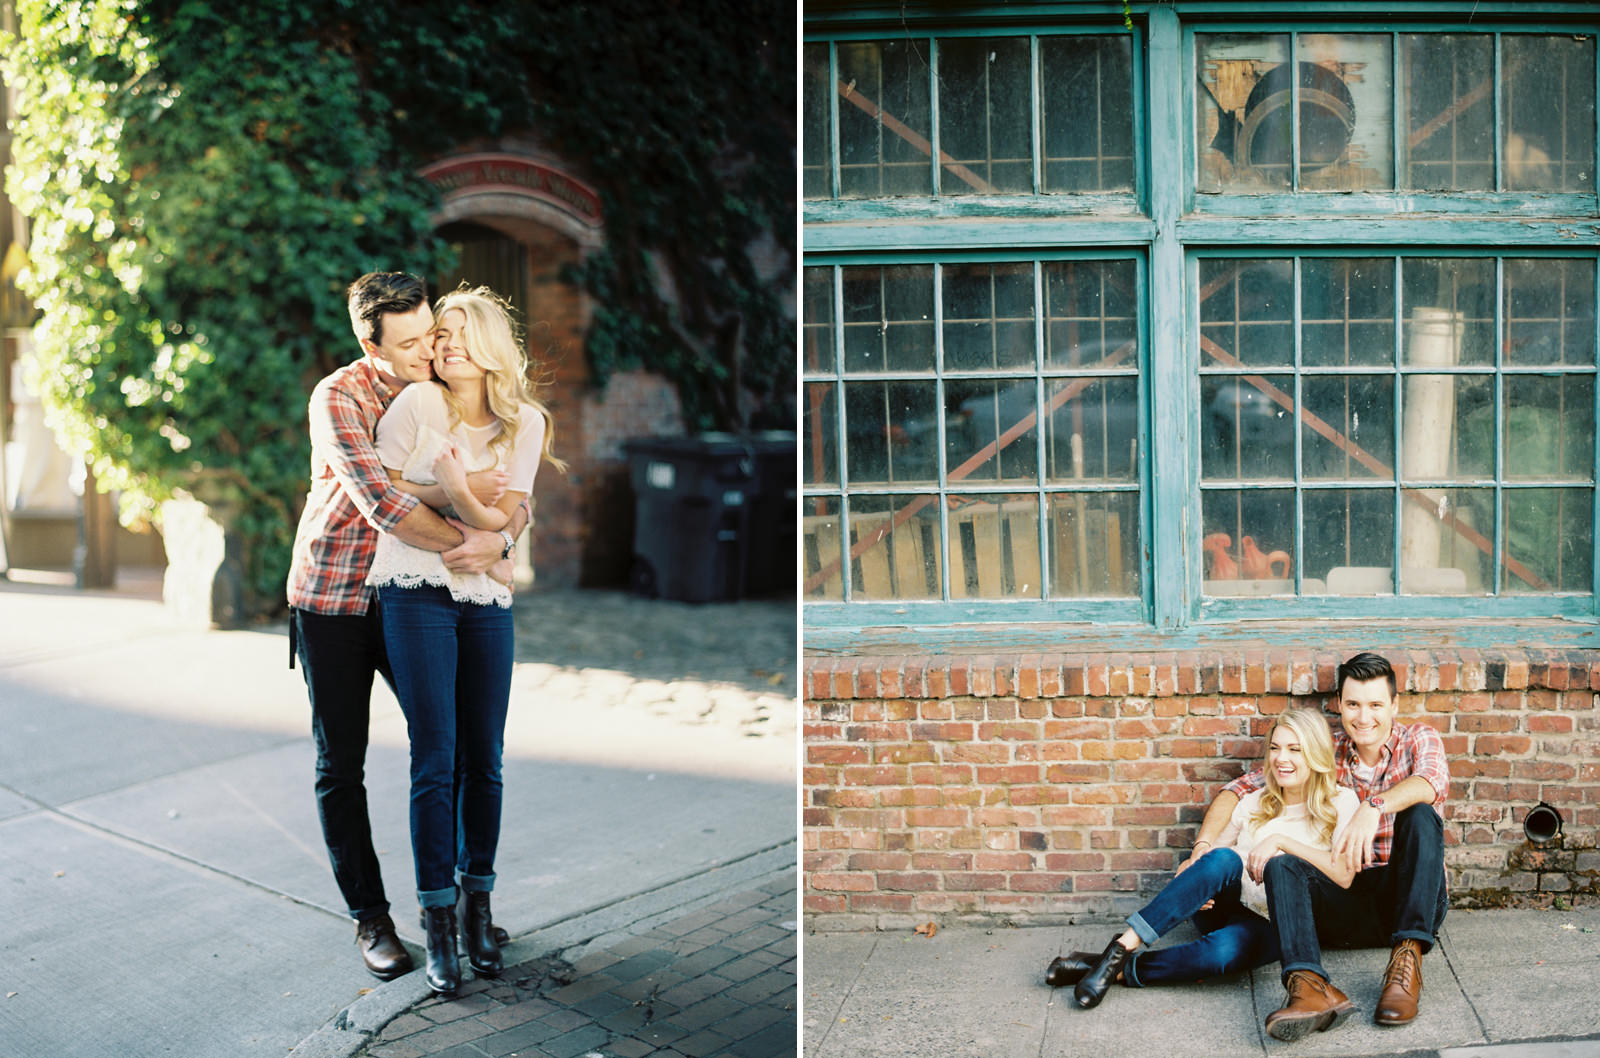 157-pioneer-square-engagement-photos-by-best-washington-film-wedding-photographer-ryan-flynn.jpg